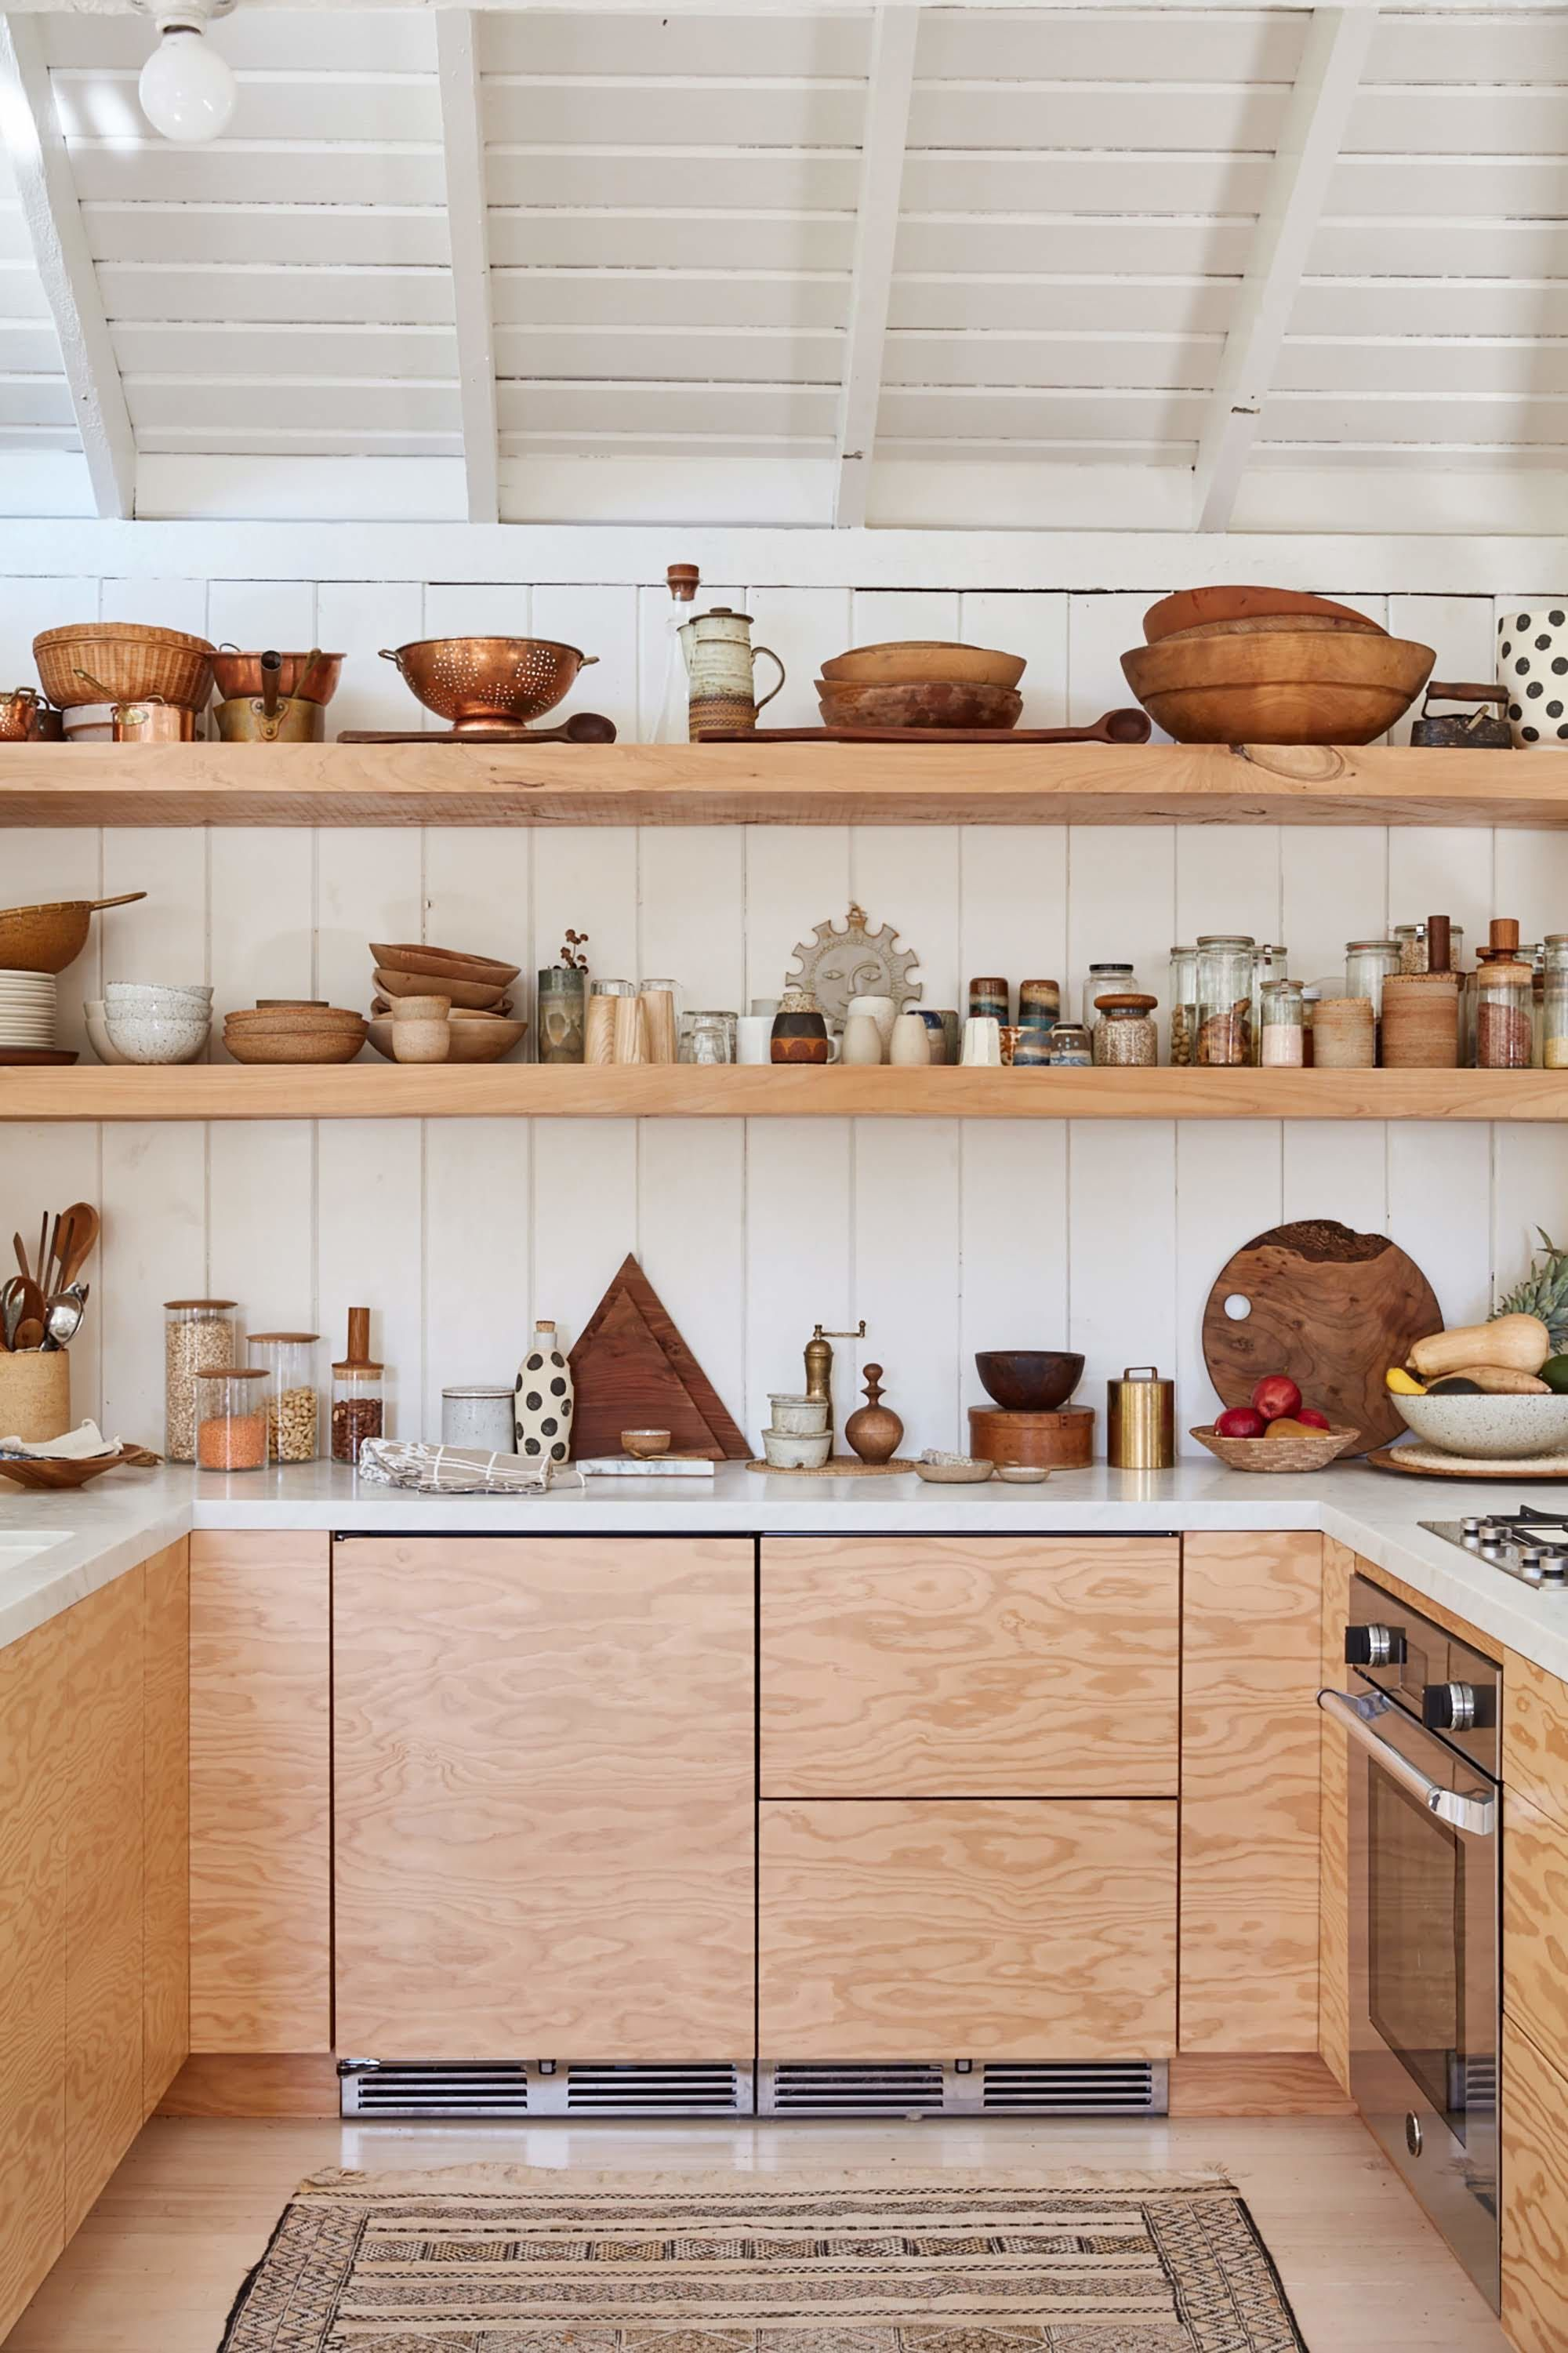 The Kitchen Renovation Cost In 2019 Is Way Higher Than Last Year